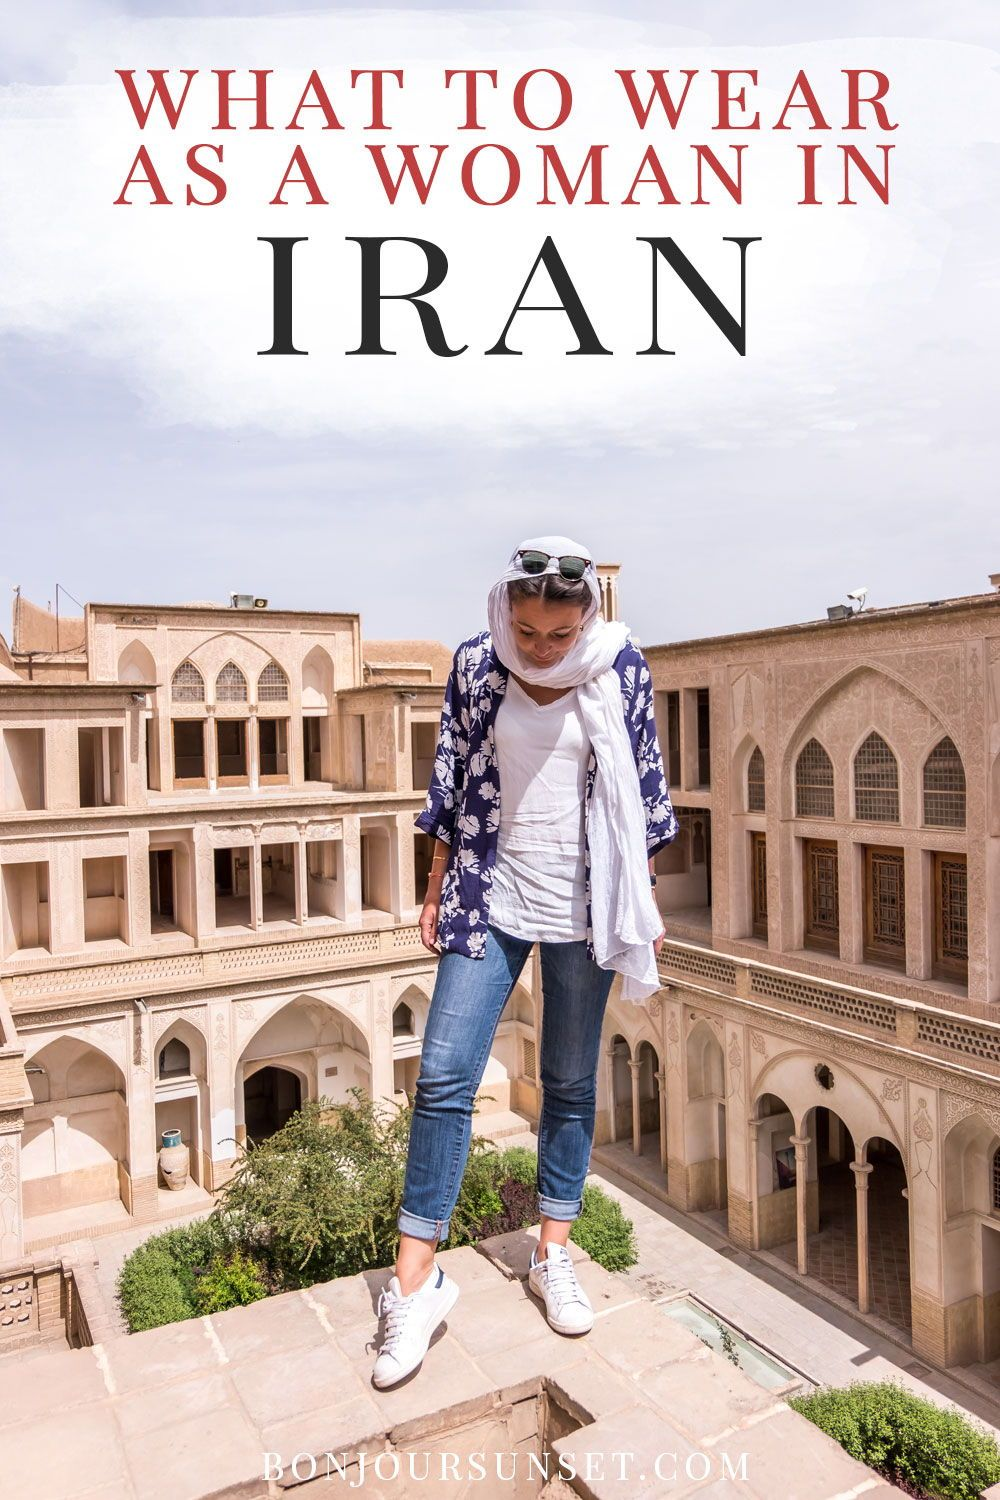 BonjourSunset Travel Blog | What to wear in Iran as a female traveller. The ultimate guide. #iran #travel #travelblog